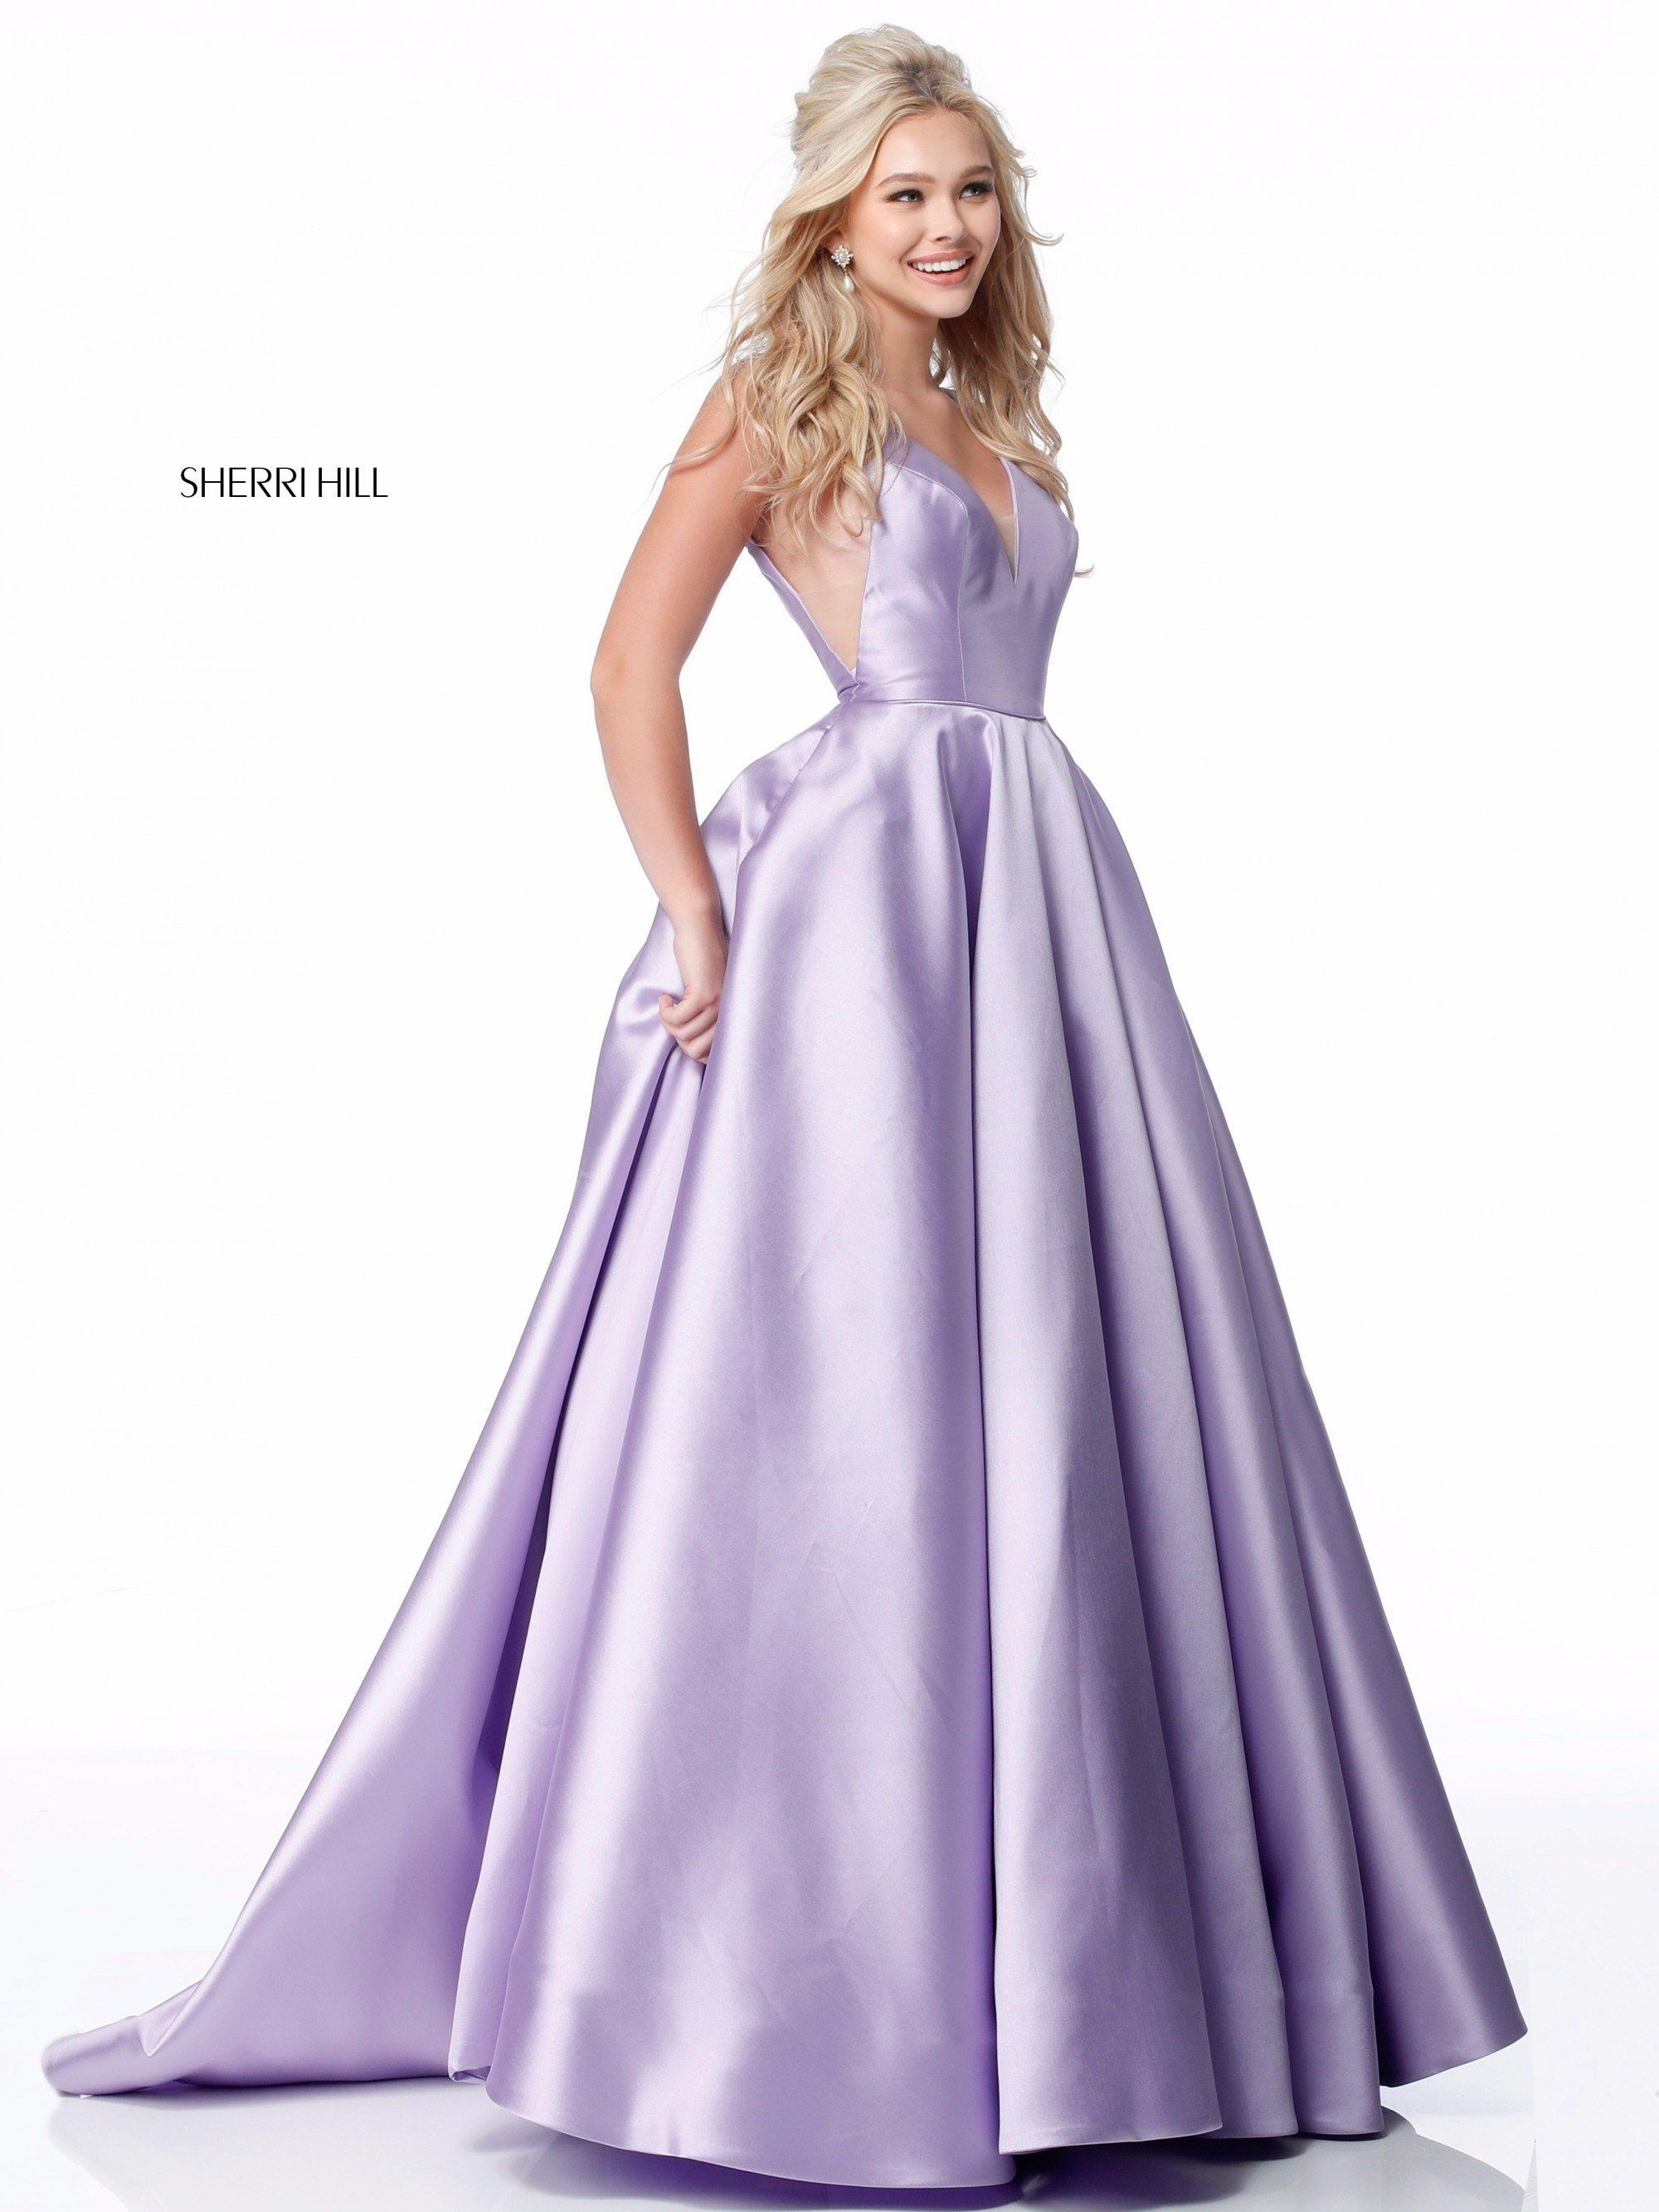 619b8581a74 Sherri Hill 51856 Classic V-Neck Satin Ball Gown in 2019